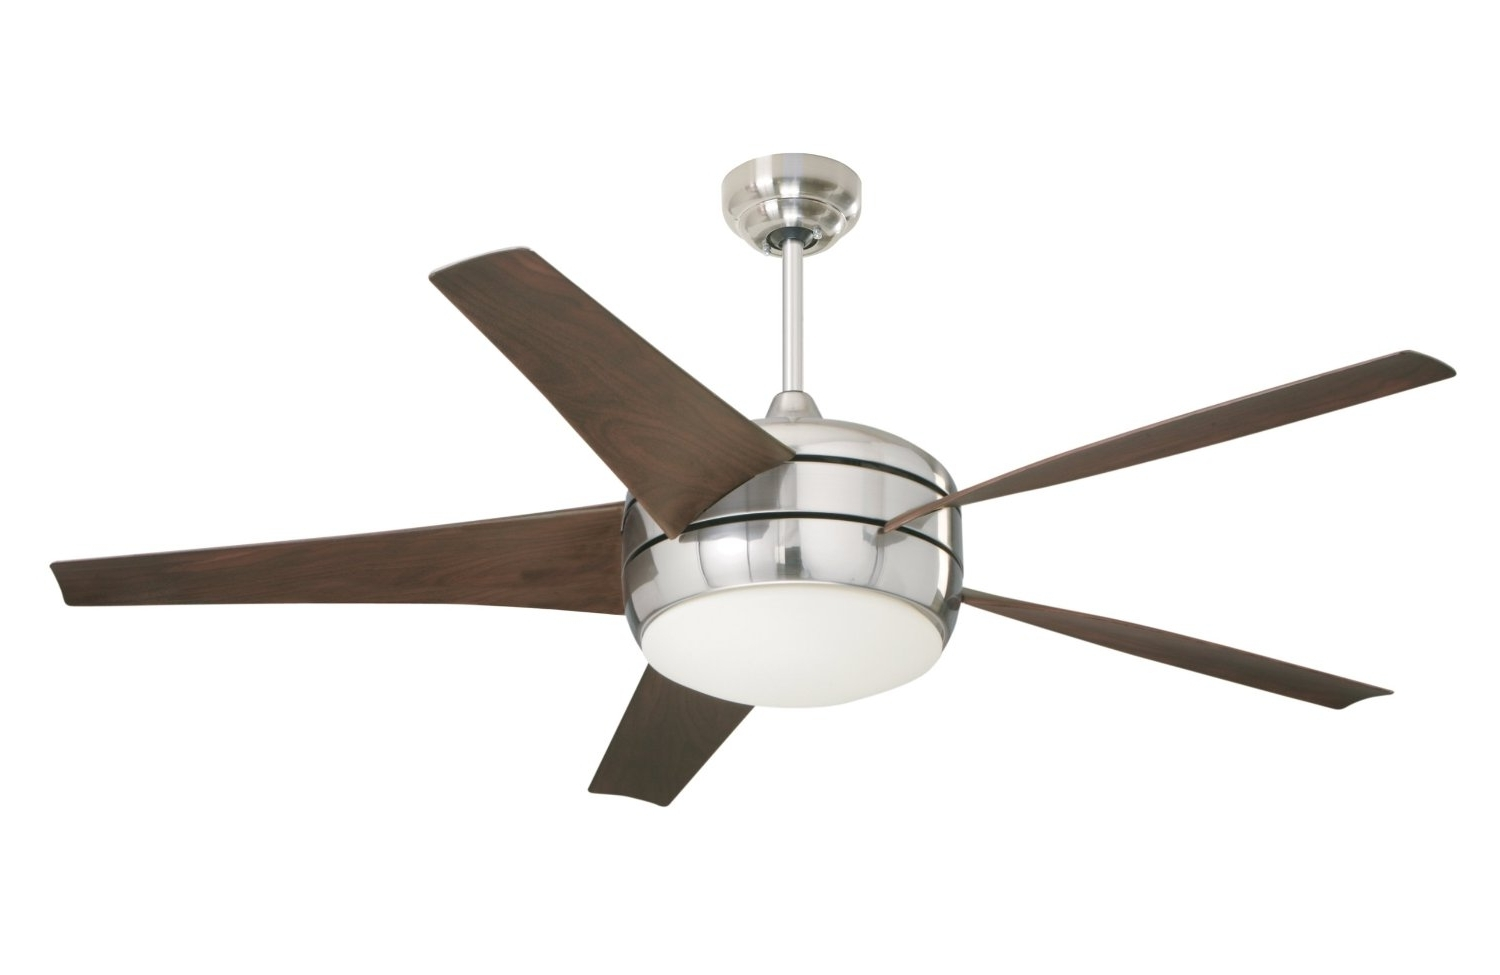 Best Ceiling Fans Reviews, Buying Guide And Comparison 2018 Pertaining To 2019 Emerson Outdoor Ceiling Fans With Lights (Gallery 20 of 20)